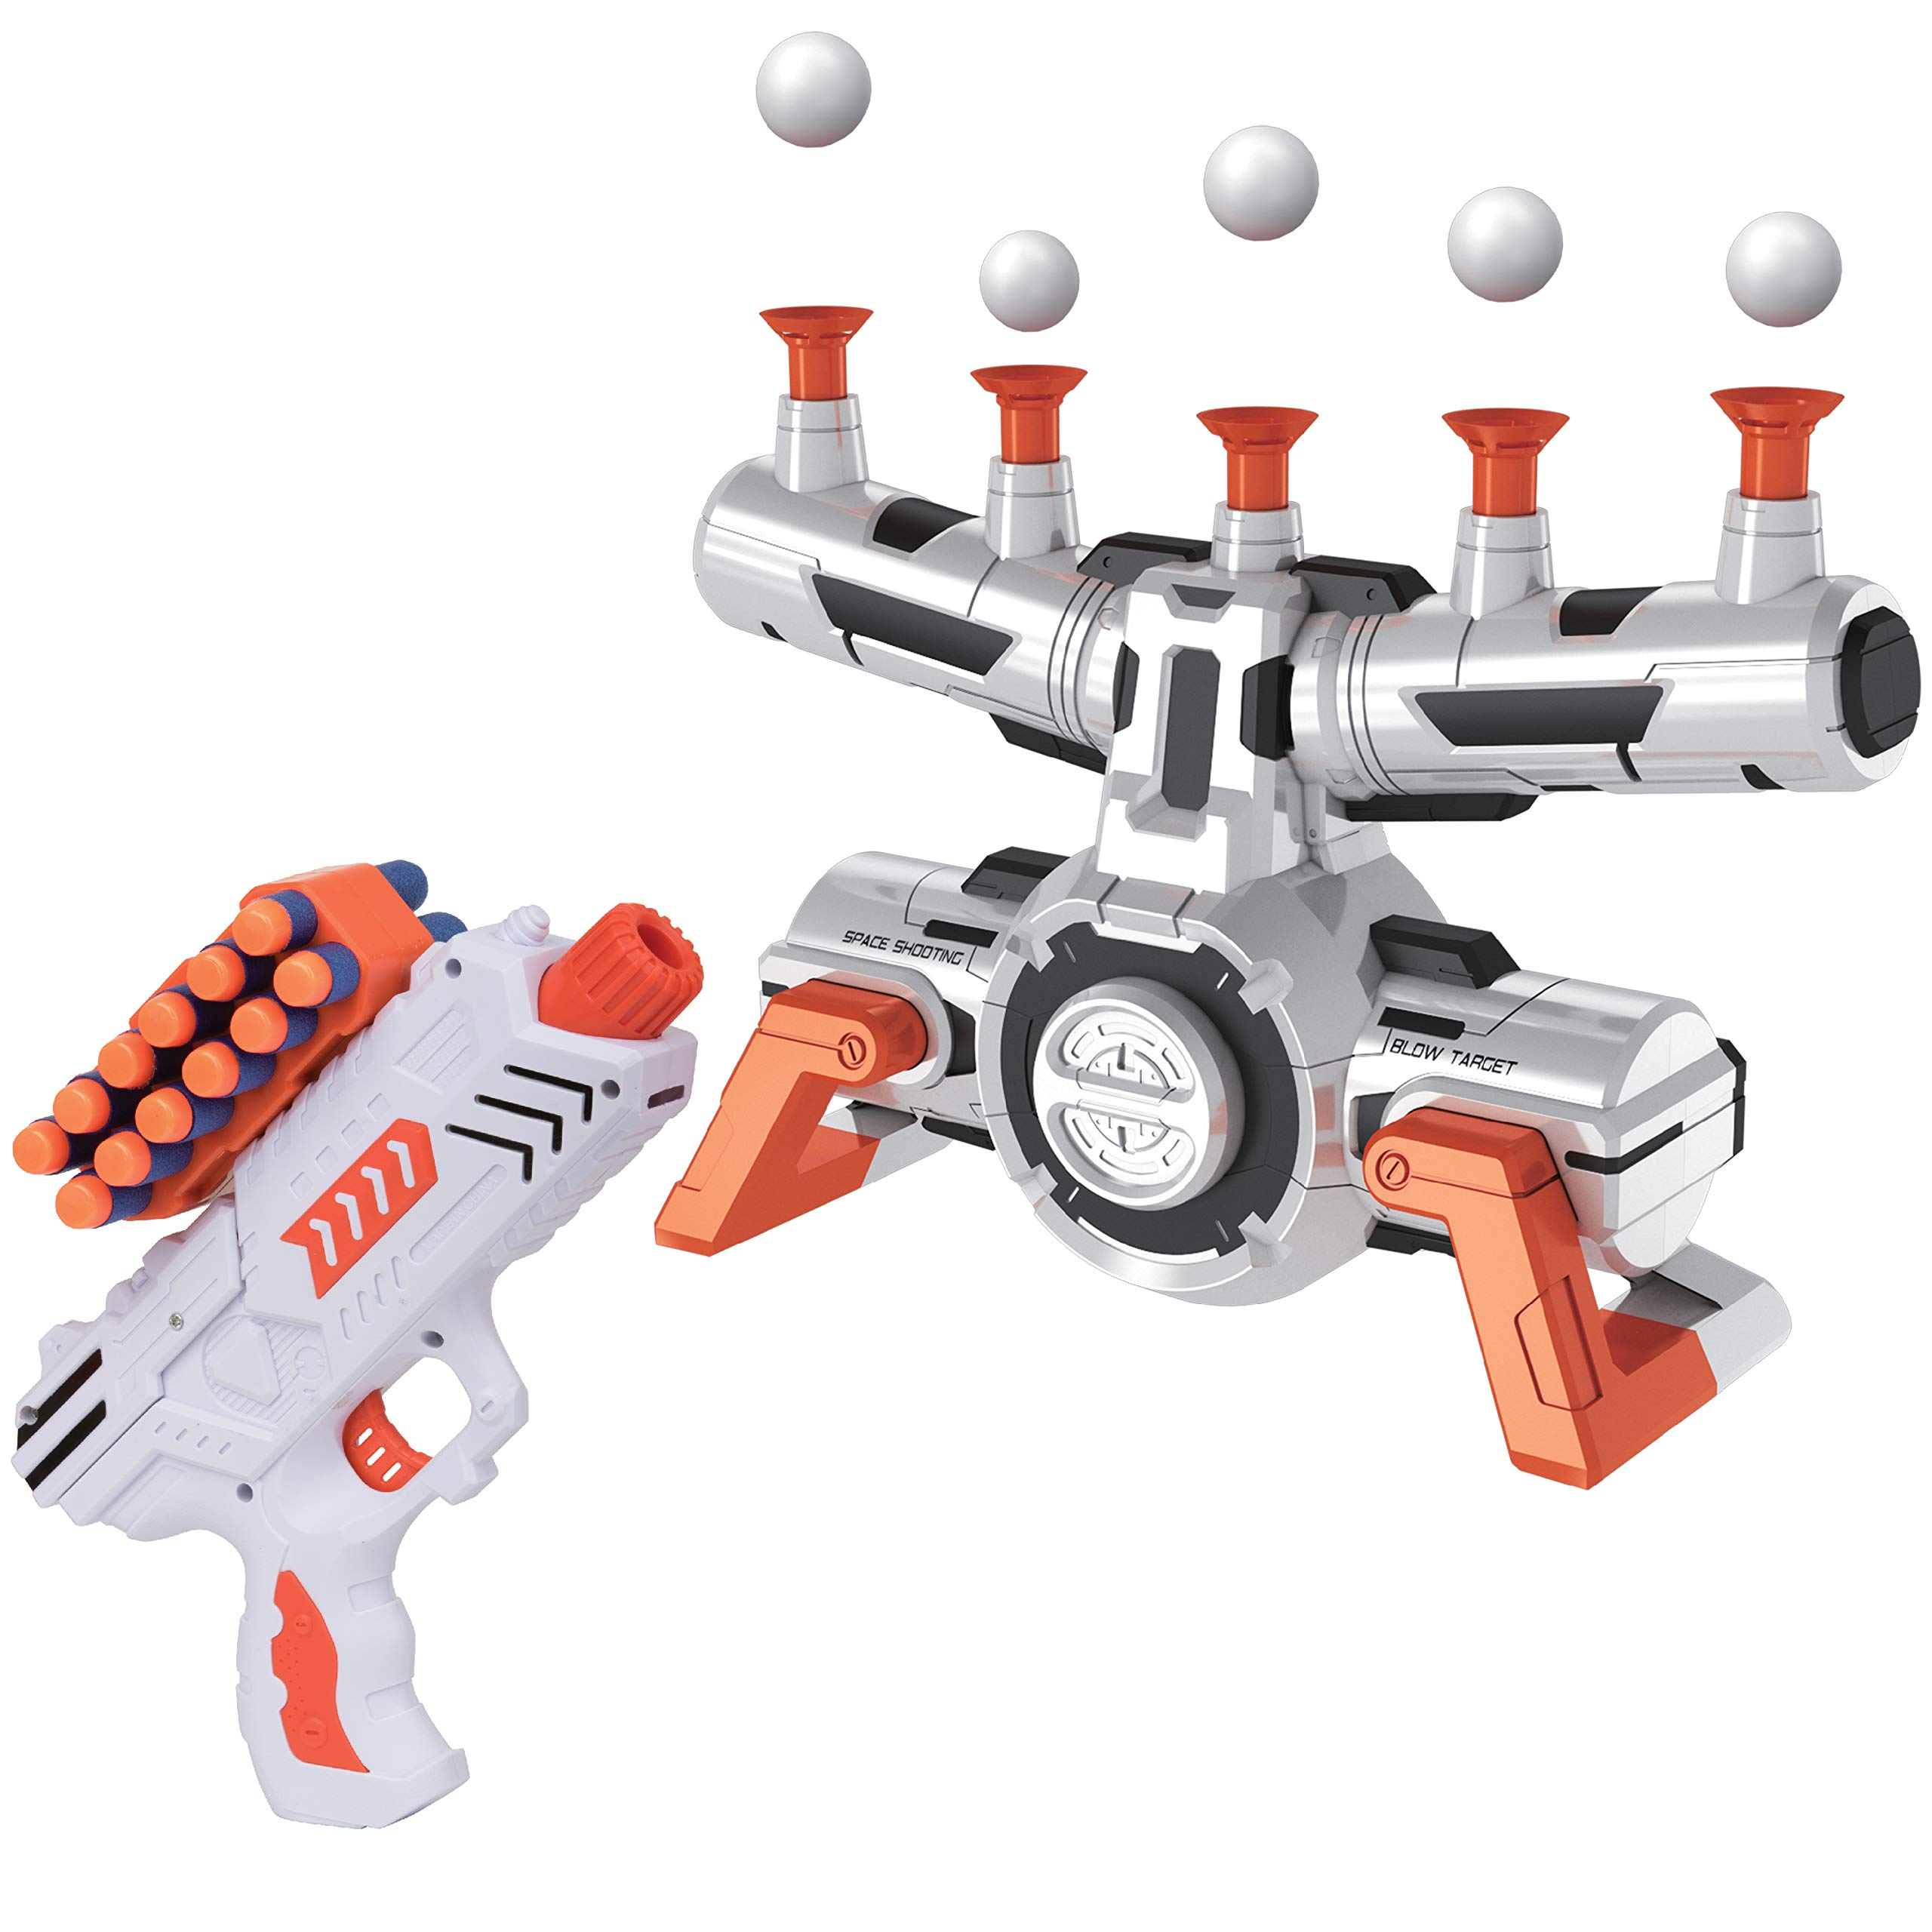 USA Toyz Compatible Nerf Targets for Shooting - AstroShot Zero G Floating Orbs Nerf Target Practice with Blaster Toy Guns for Boys or Girls and Foam Darts by USA Toyz